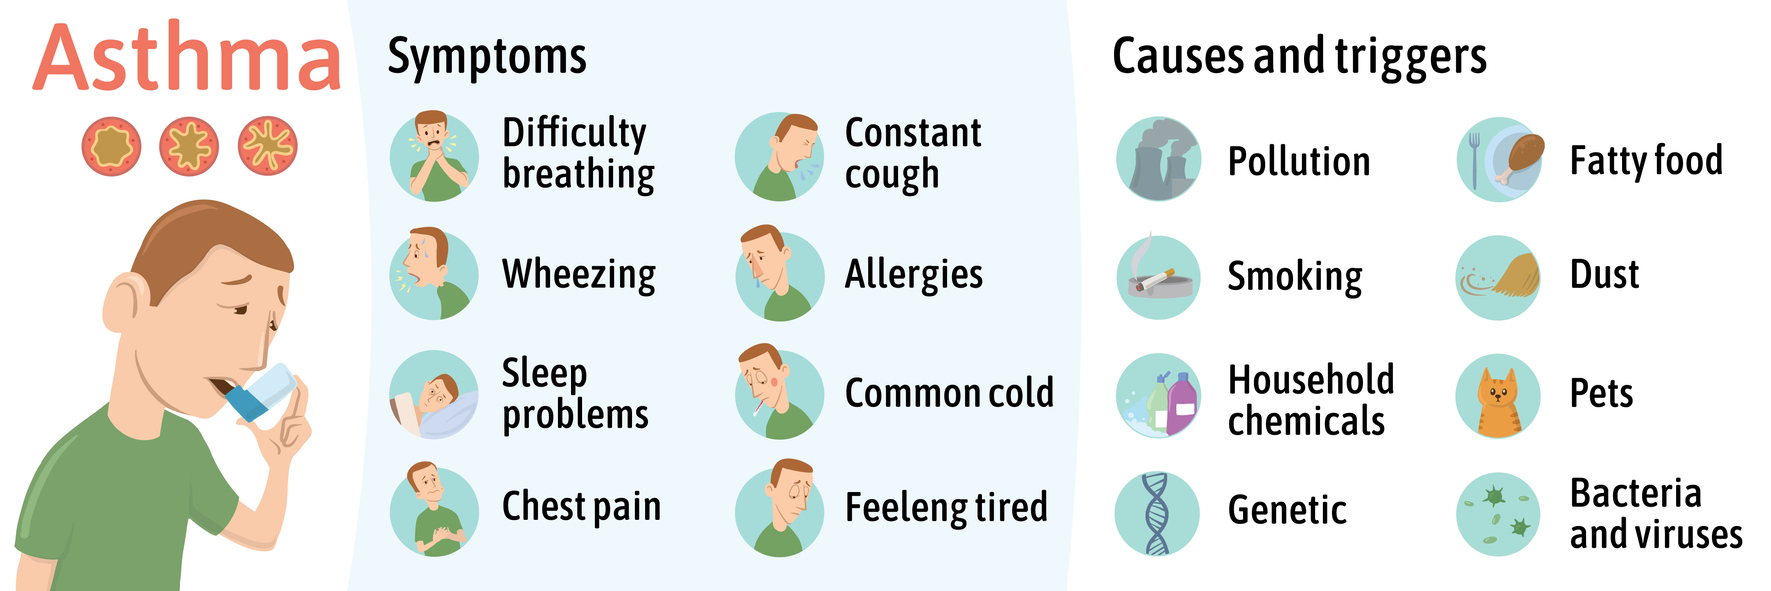 asthma symptoms graphic